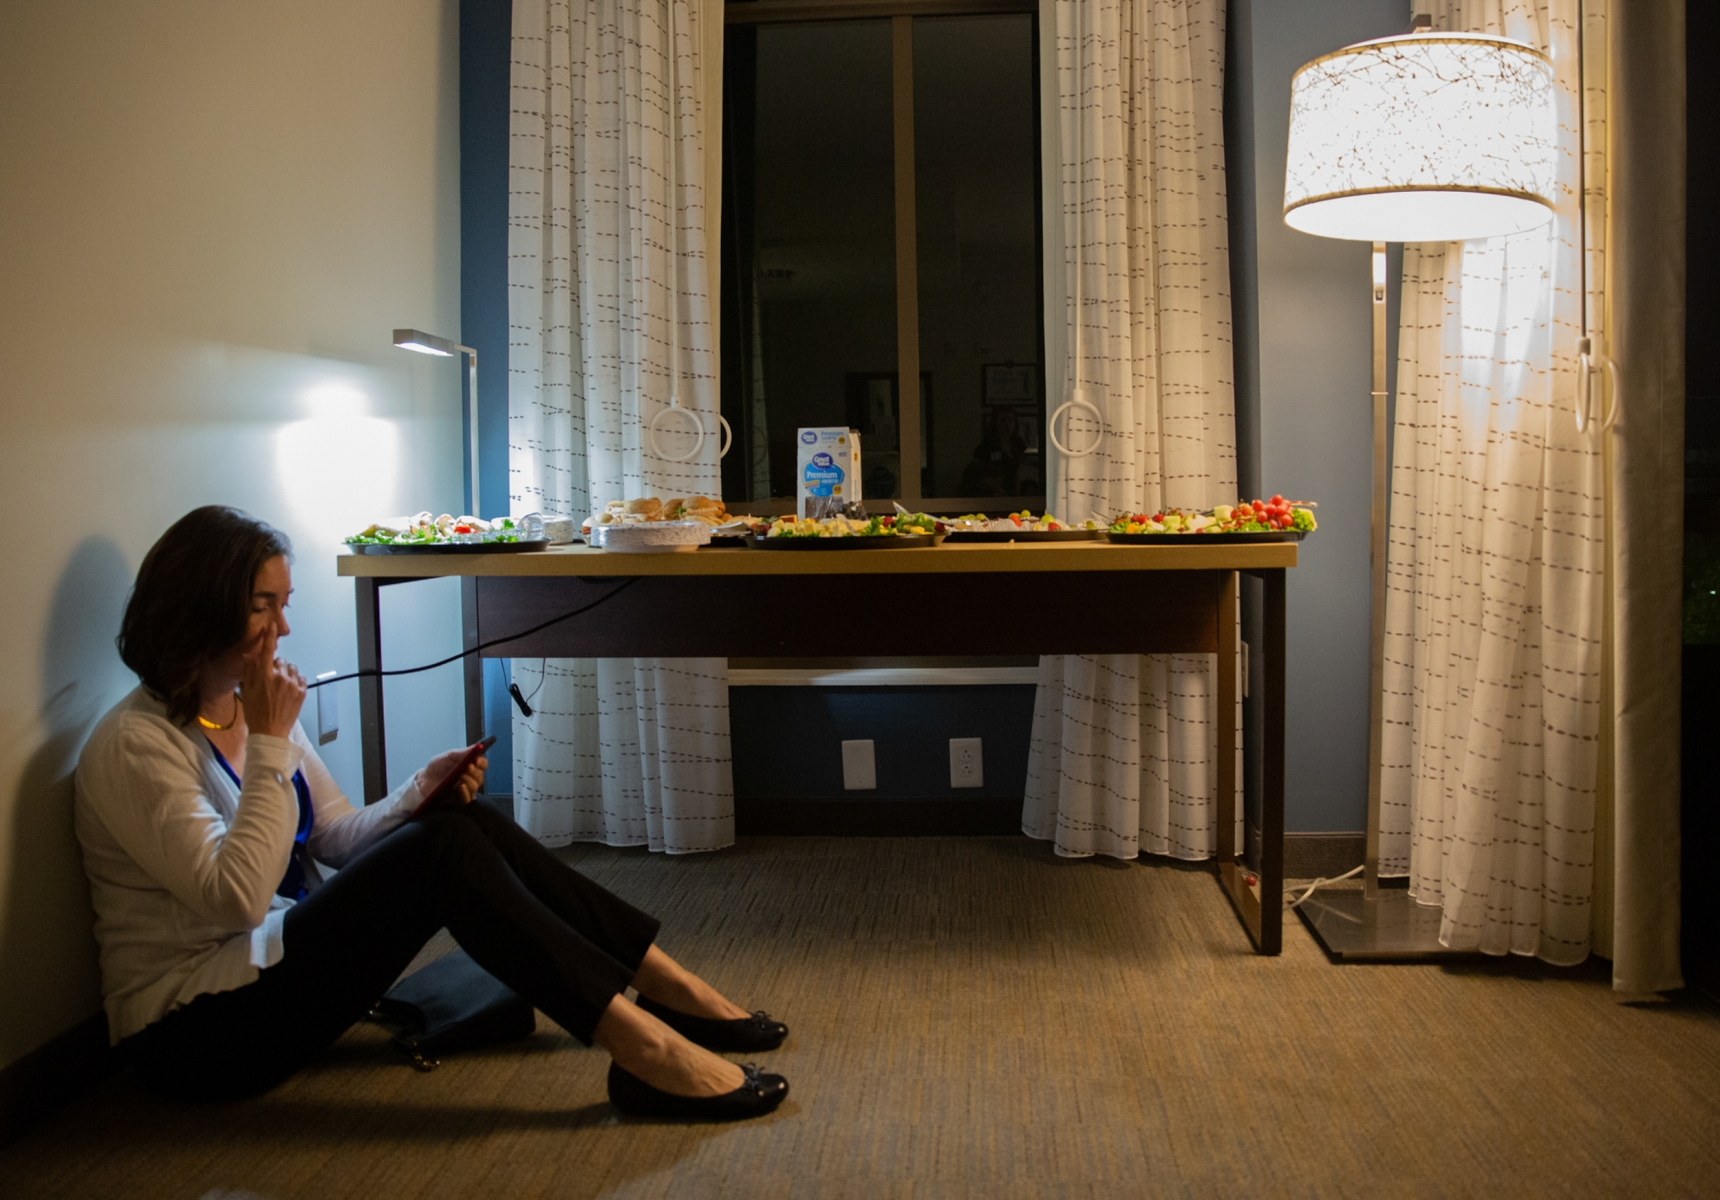 """On election day, Nov. 6th, Anita Earls, candidate for N.C. Supreme Court, sits alone in front of a food table before her """"war room"""" party at a hotel in downtown Raleigh.  The rest of her campaign staff are taking up the rest of the chairs in the suite doing work.""""I'm really nervous. I have no clue what I'm supposed to be doing right now. I have no idea how this works,"""" Earls says. """"Am I supposed to call my opponent if I win? What is that timing like? Do I wait for her to call me? How long? What if she wins? I'm really in the dark here. I'm really not a politician.""""  Anita Earls won the race that night and became the 100th justice of the N.C. Supreme Court."""